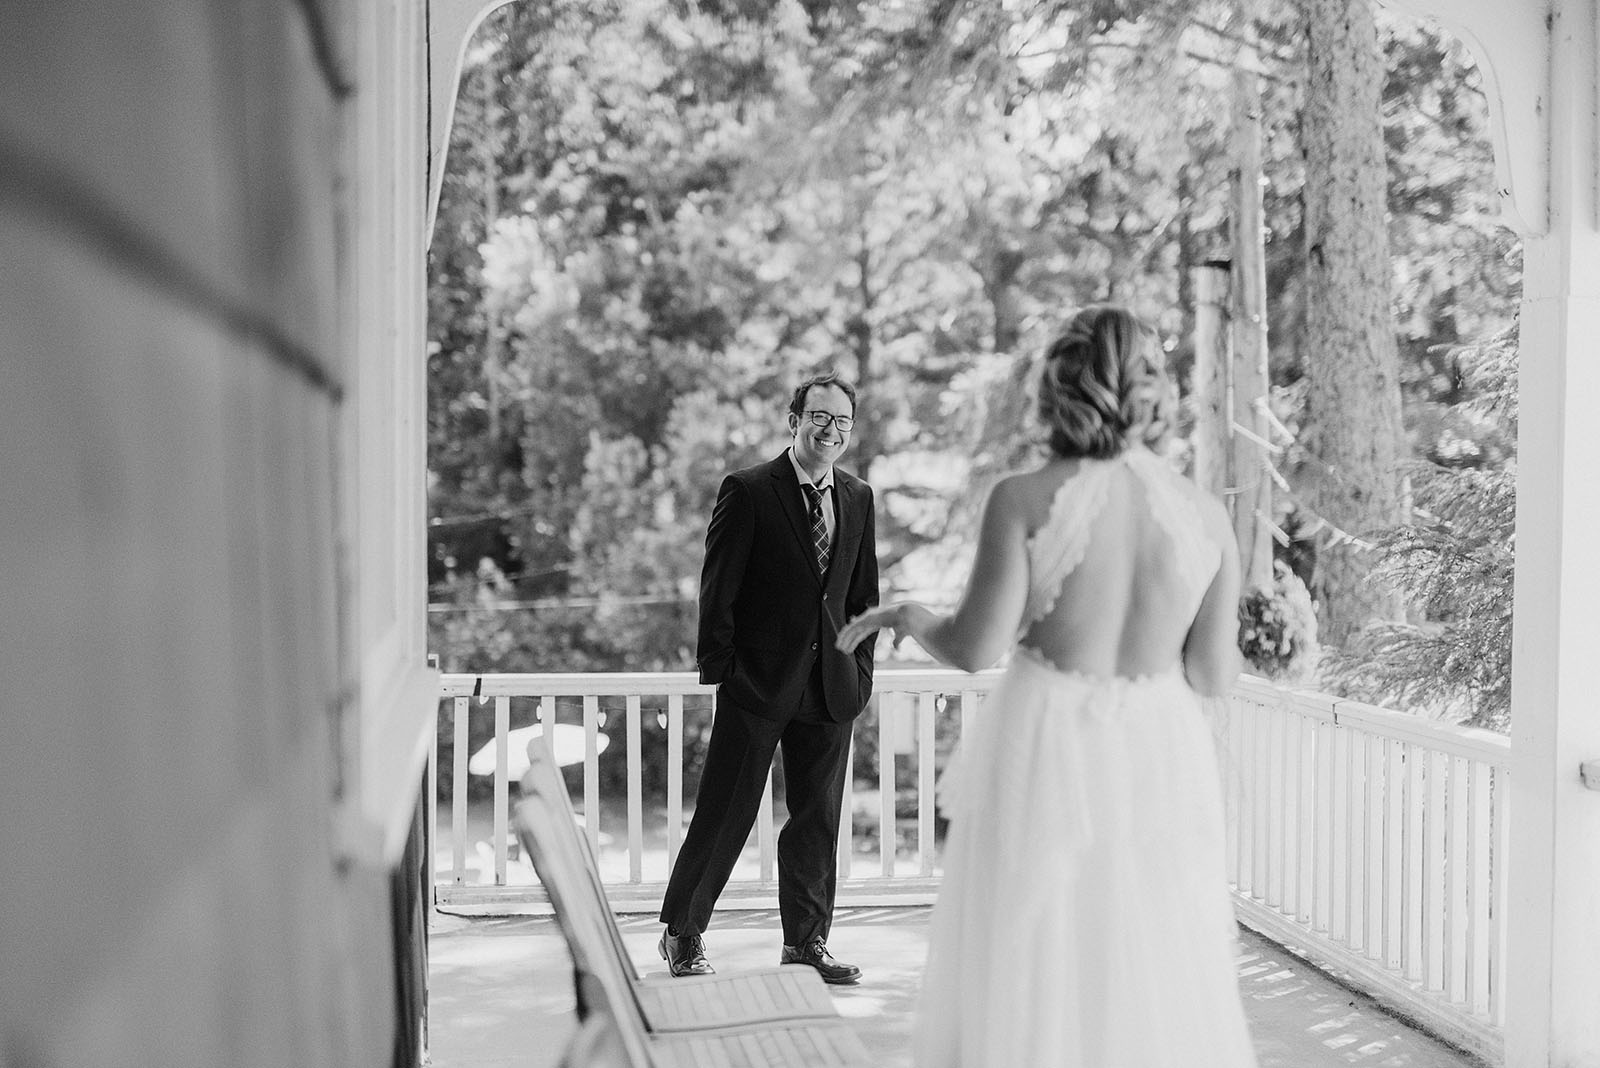 Groom's First Look with the Bride on the balcony at a SouWester Wedding in Seaview, WA